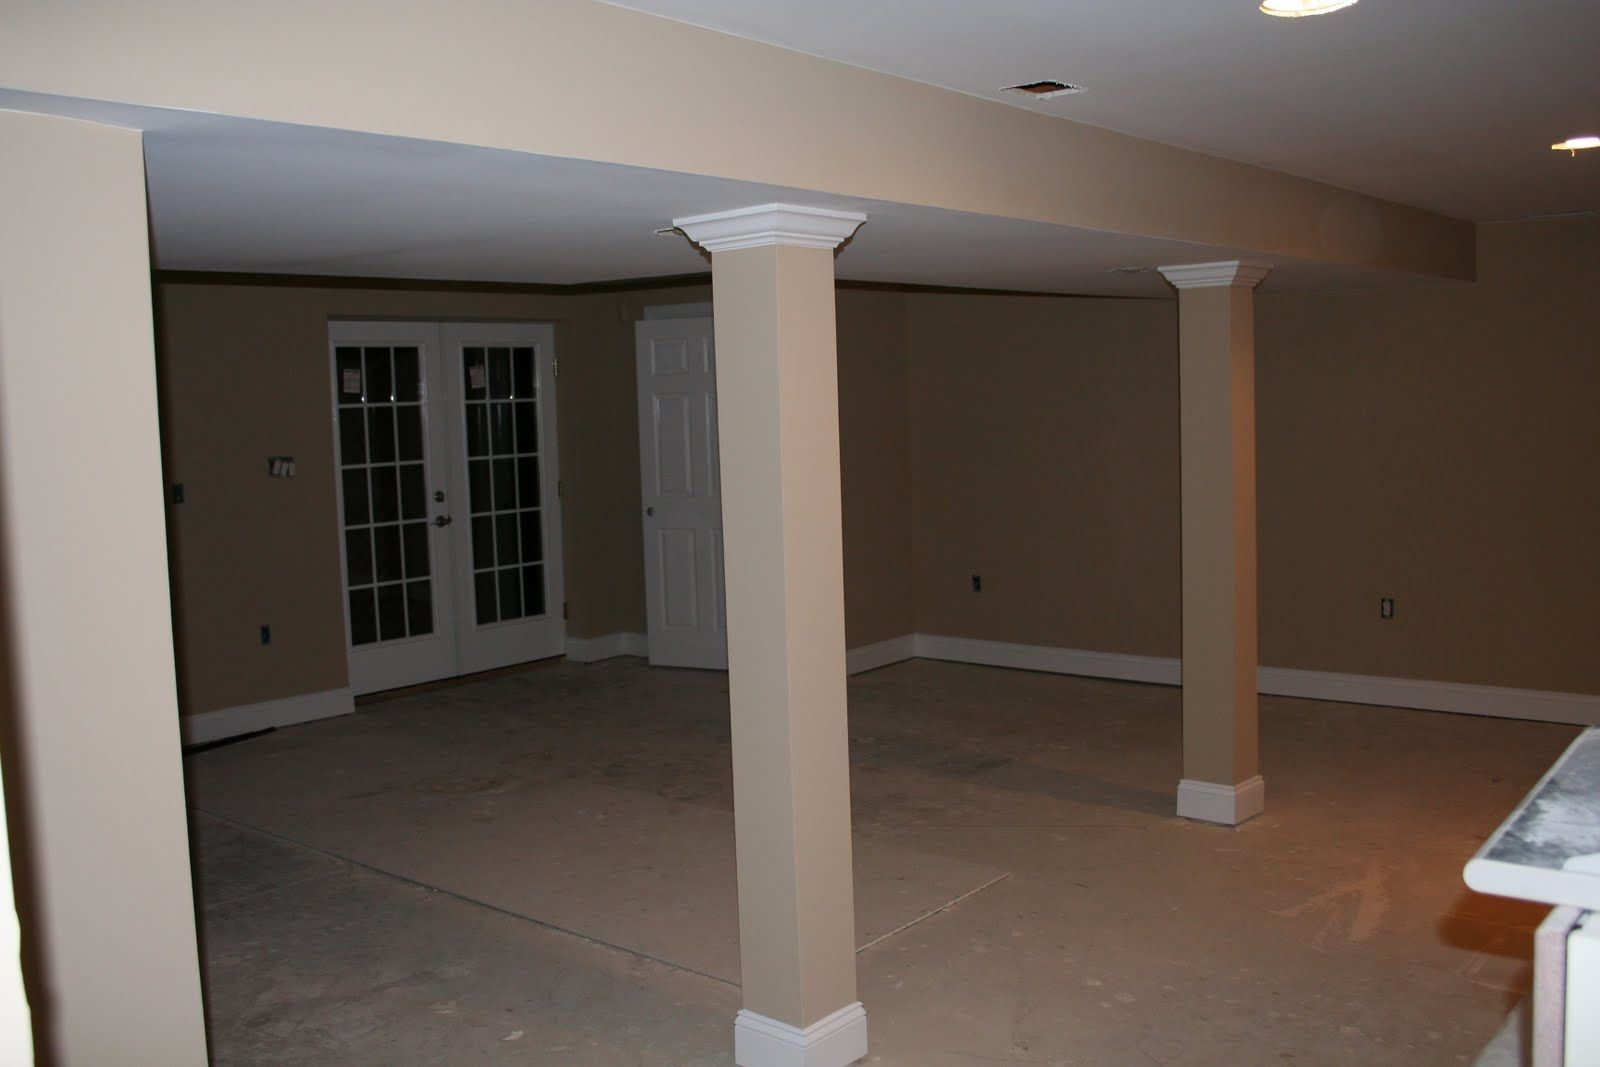 benjamin moore shaker beige wall colors pinterest. Black Bedroom Furniture Sets. Home Design Ideas